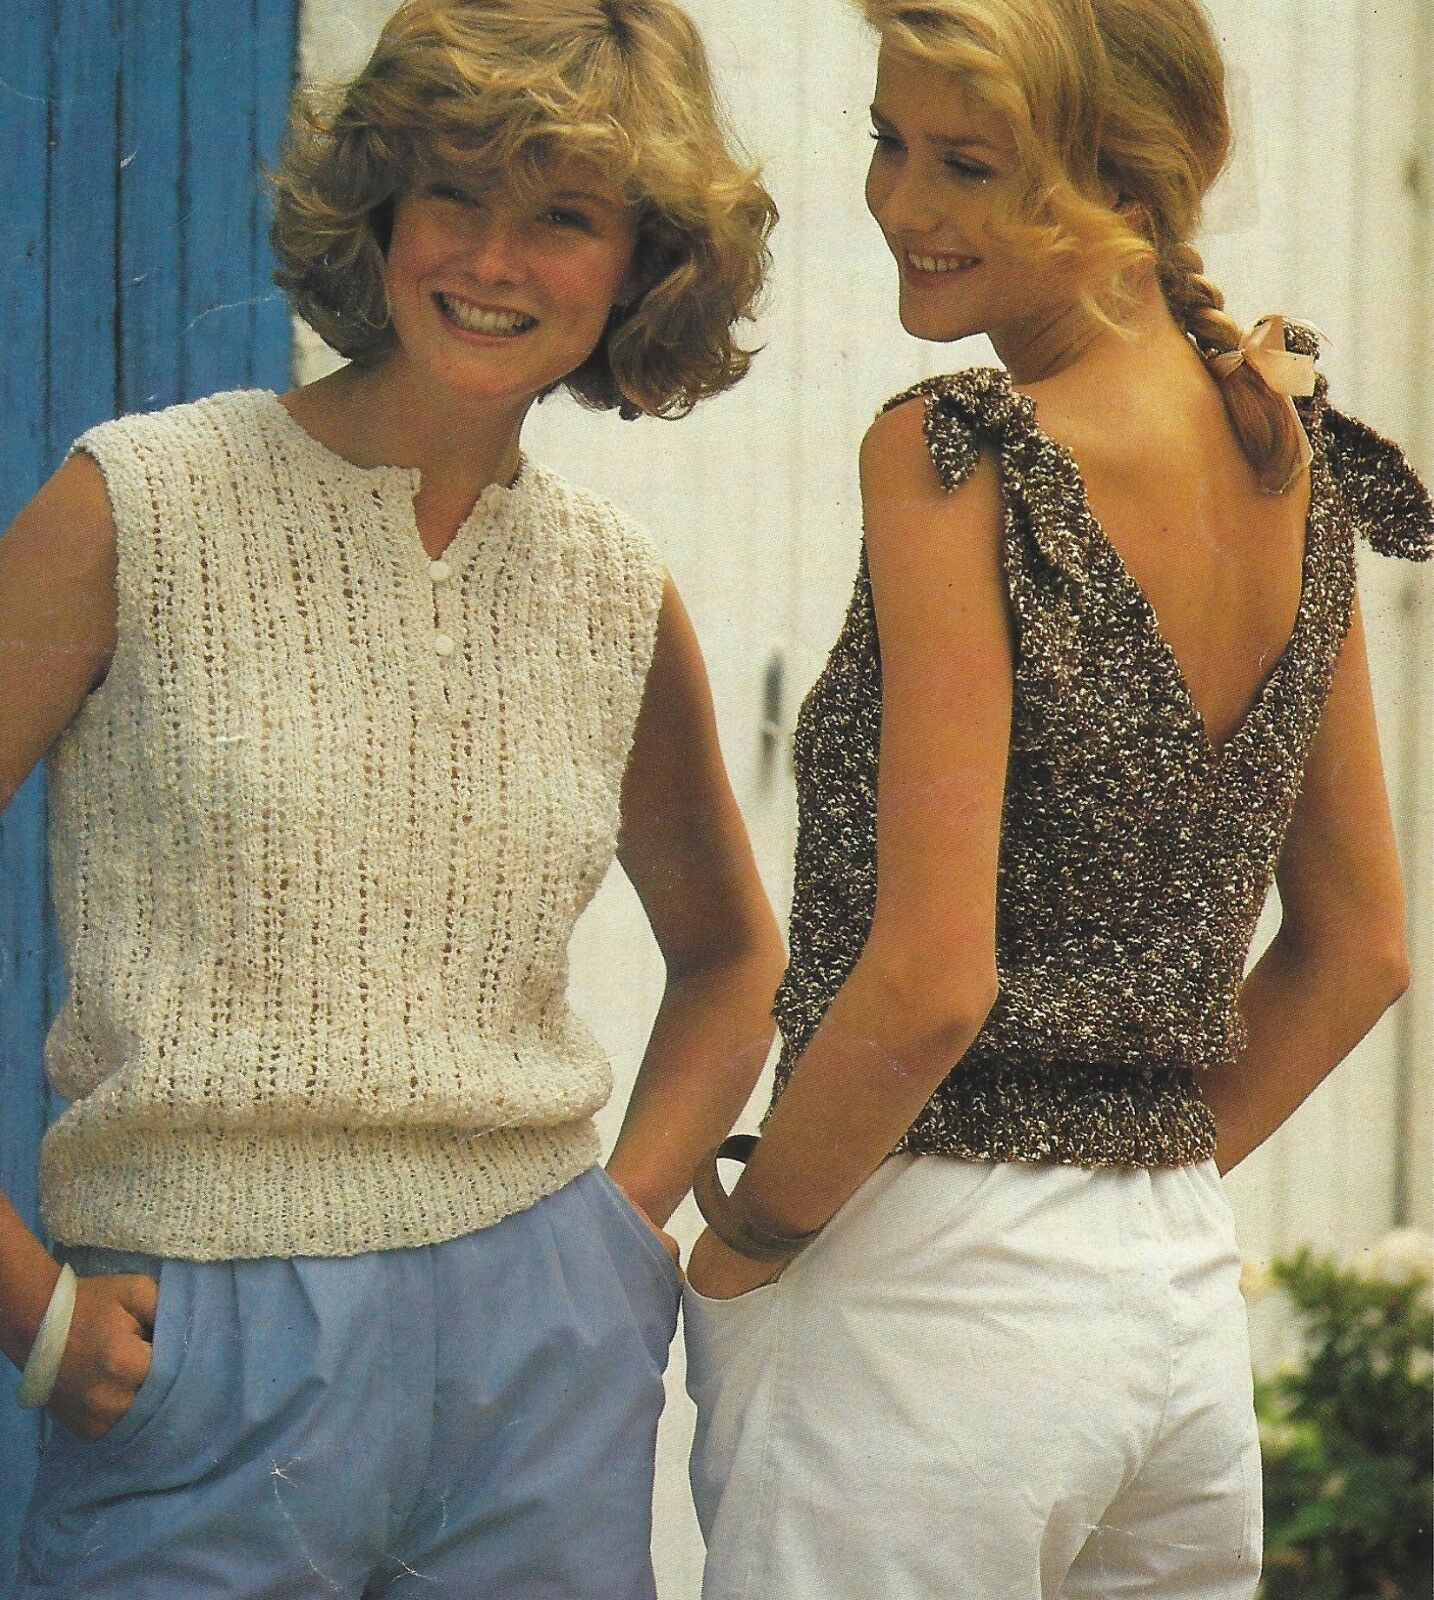 LADIES SUMMER SLEEVELESS Sweater and Sun Top Knitting Patterns in DK ...